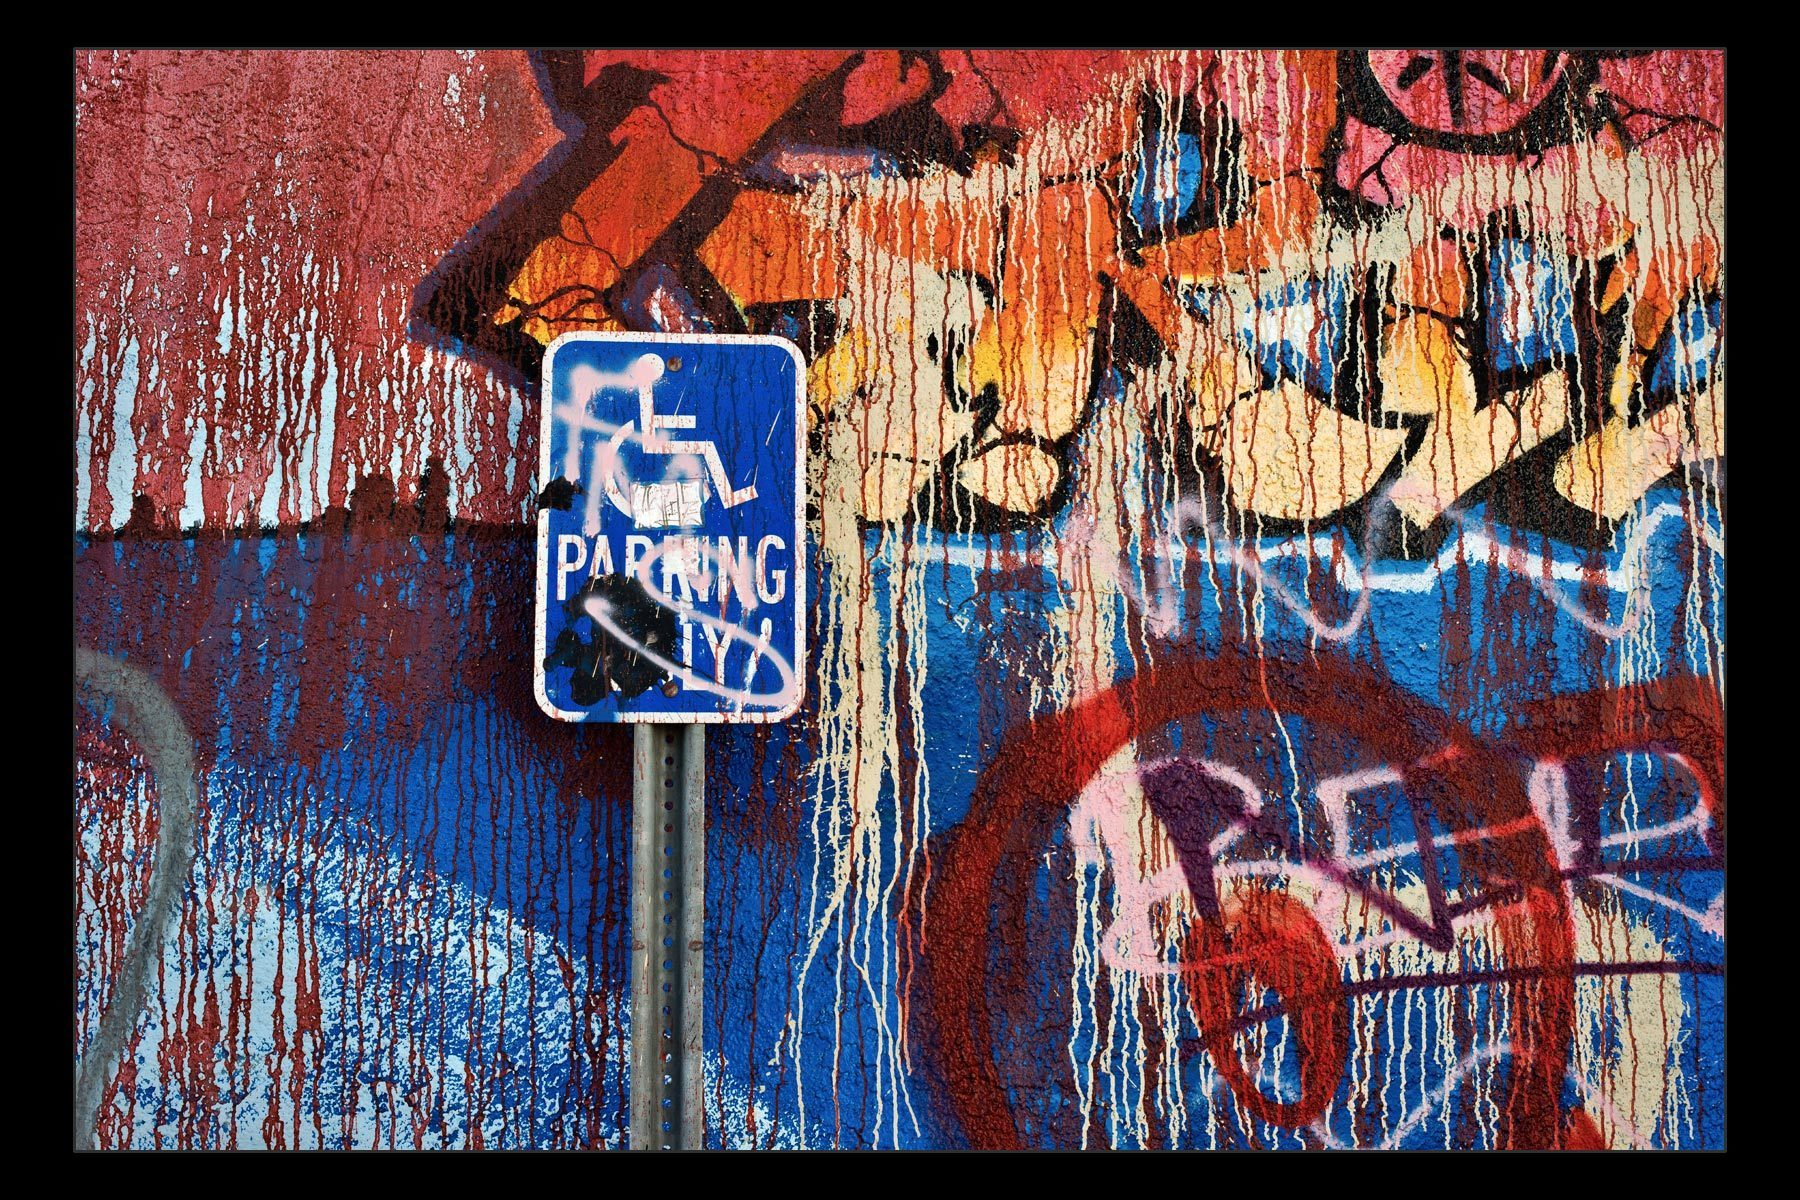 painted wall and handicapped parking, San Pedro